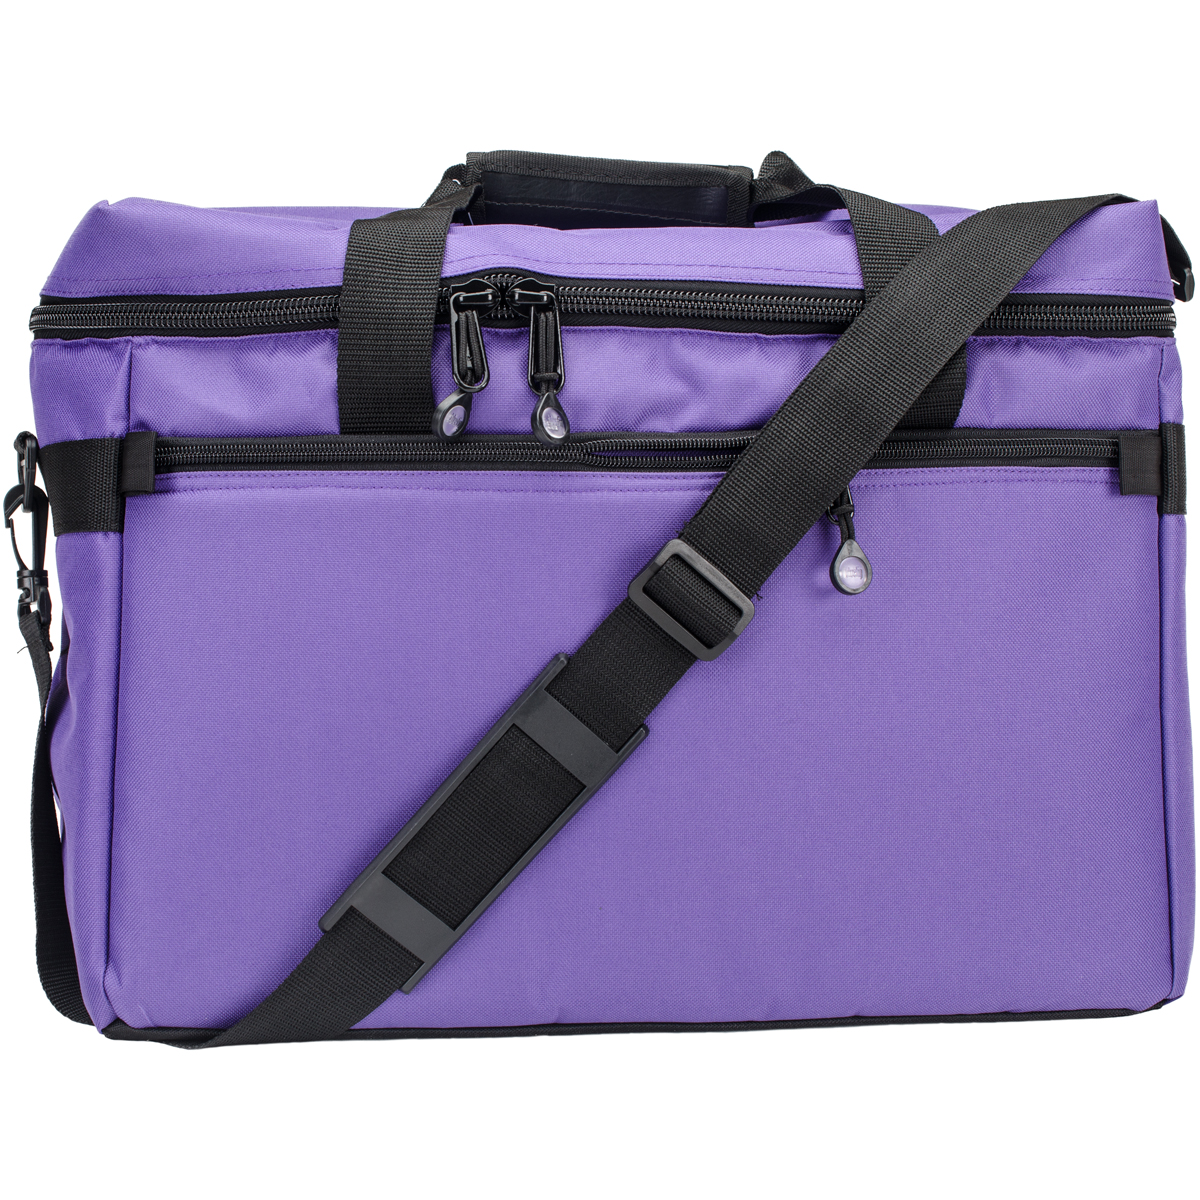 Sewing Machine/Project Bag 17 Inch X 13 Inch X 7 Inch-Purple